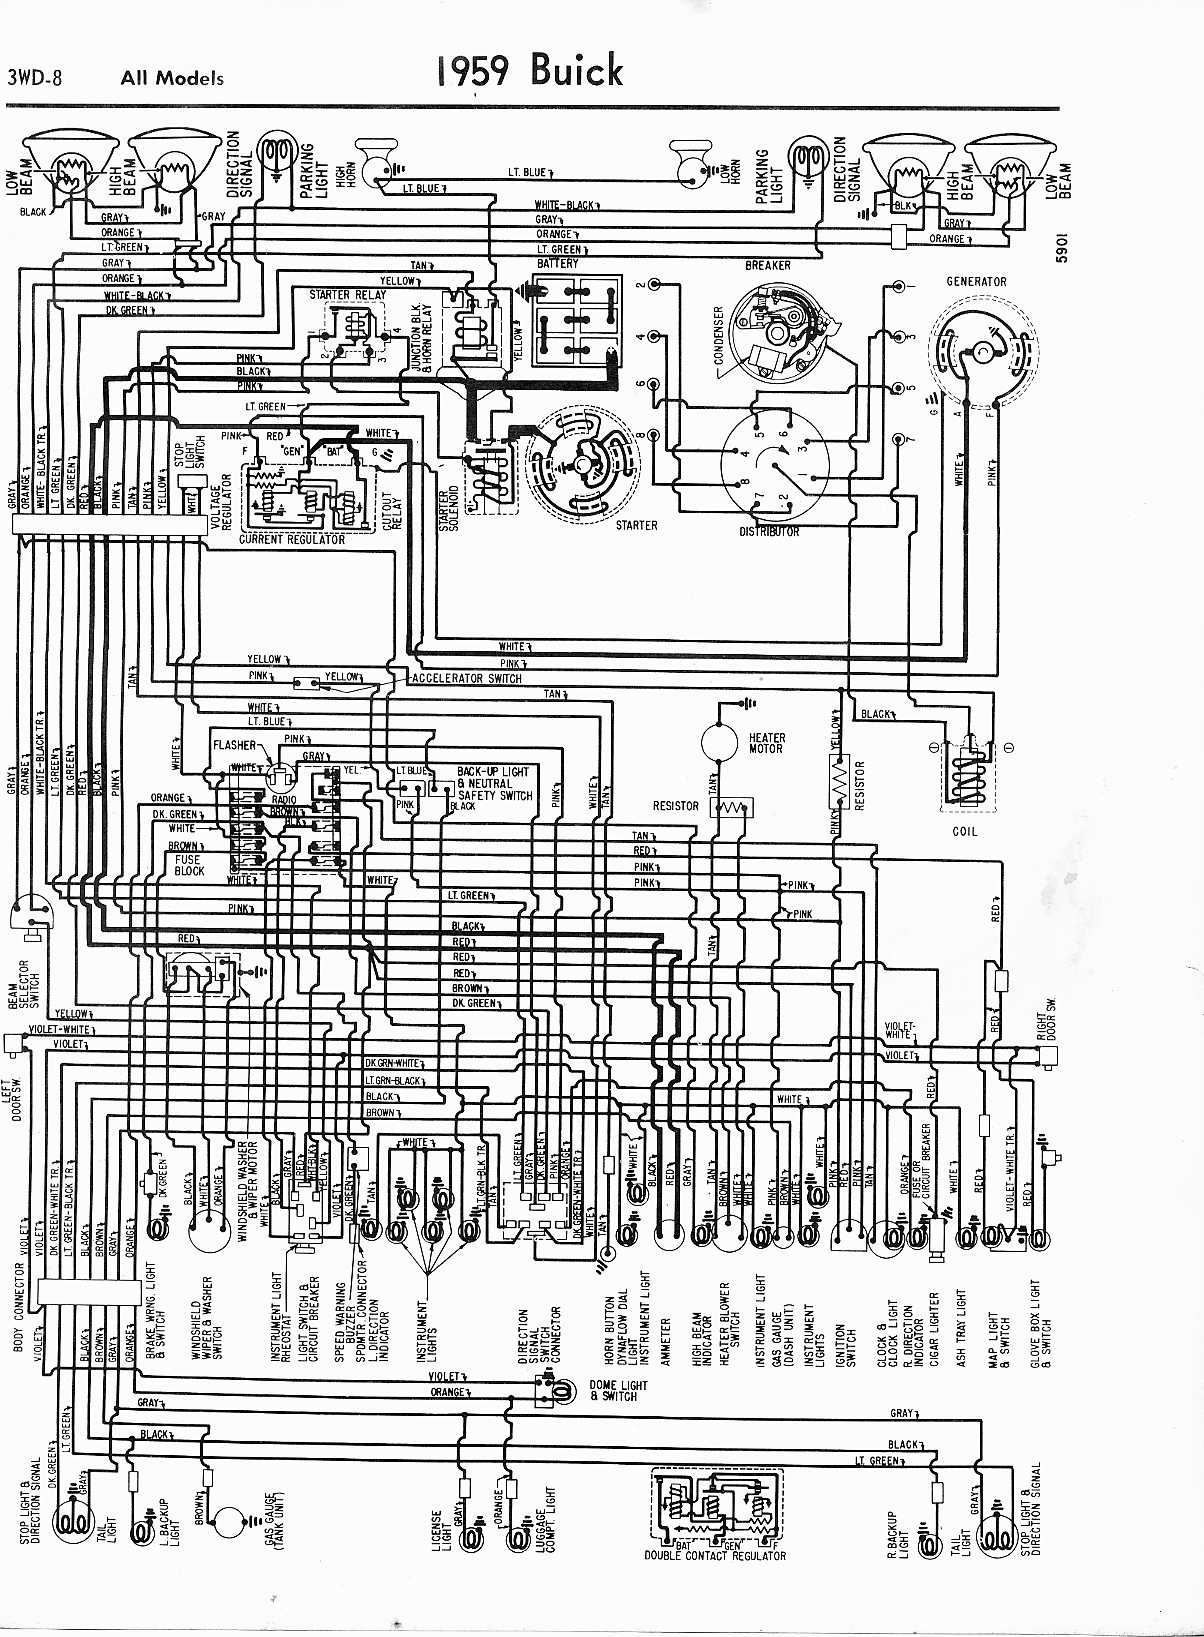 1997 buick lesabre radio wiring diagram 2005 jeep grand cherokee laredo 95 regal get free image about